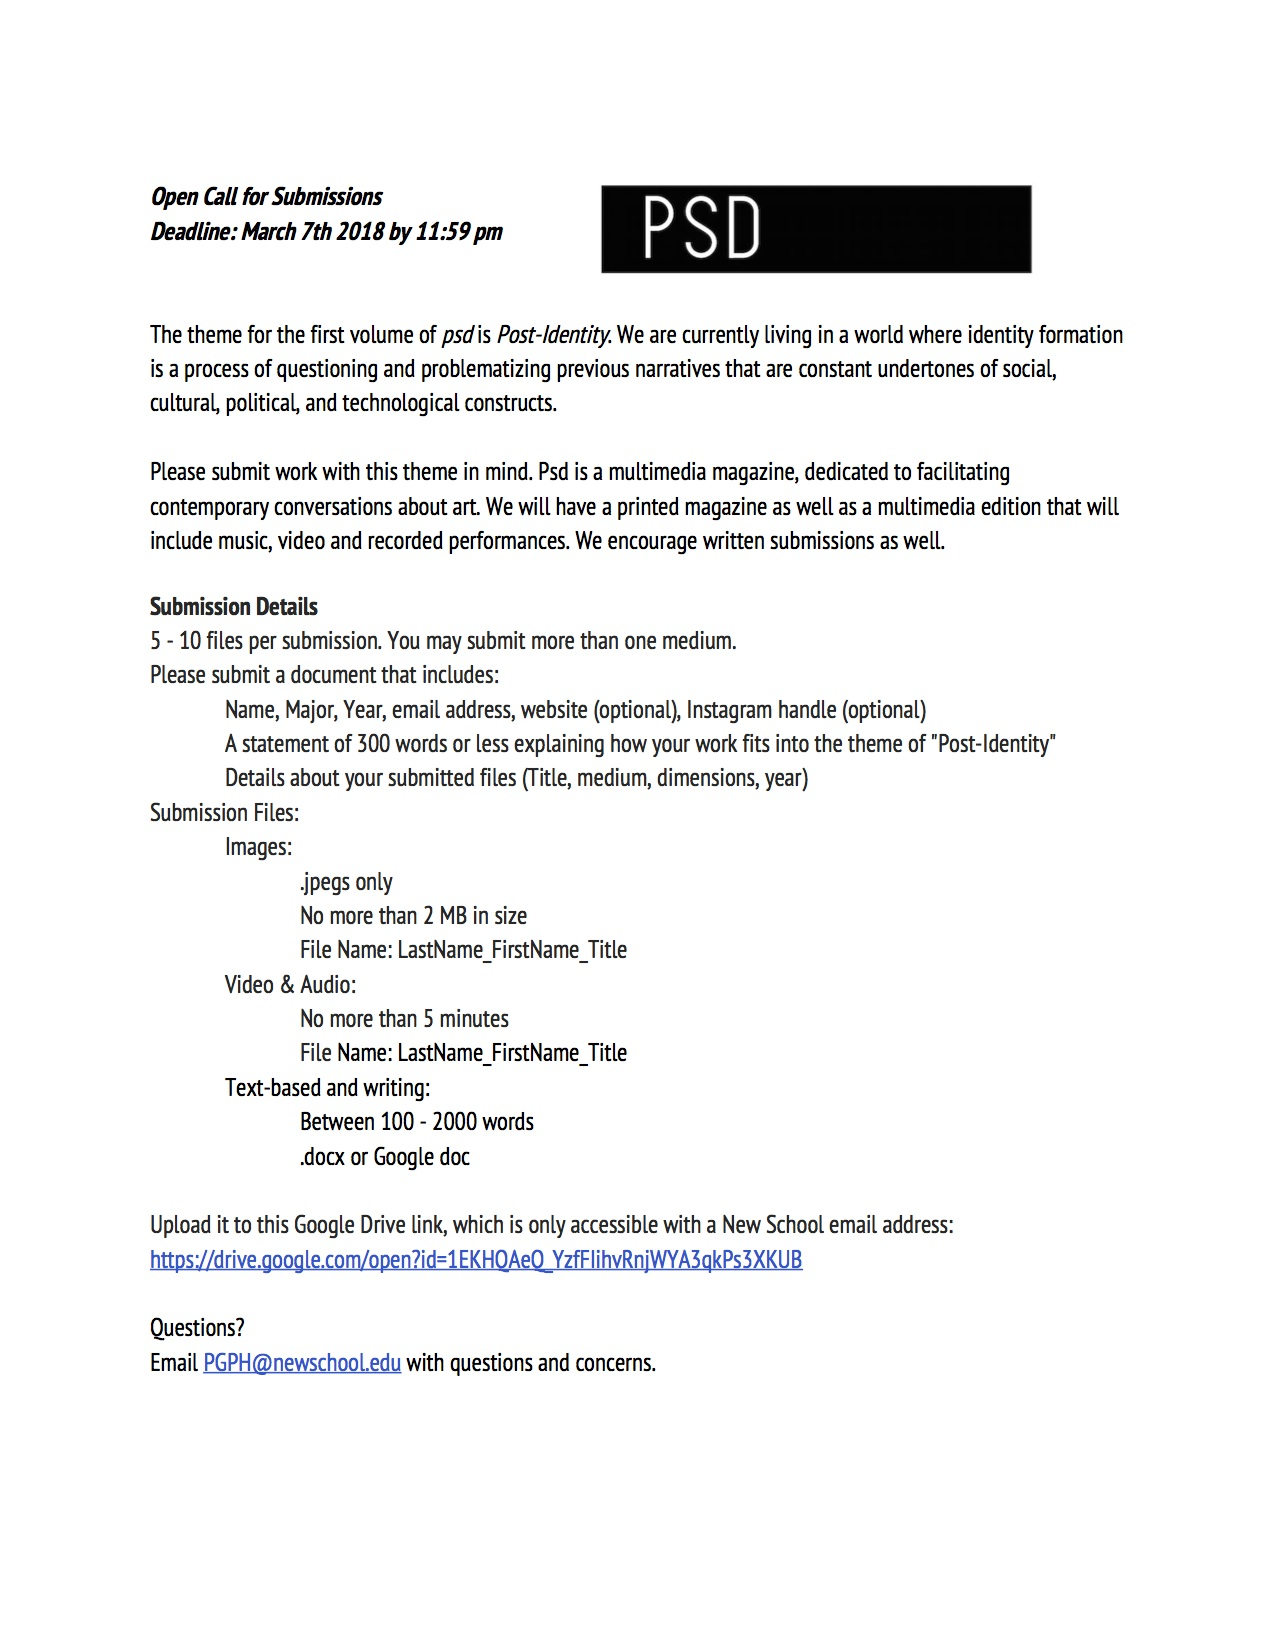 psd Magazine Open Call for Submissions, Deadline 3/7 | Art, Media